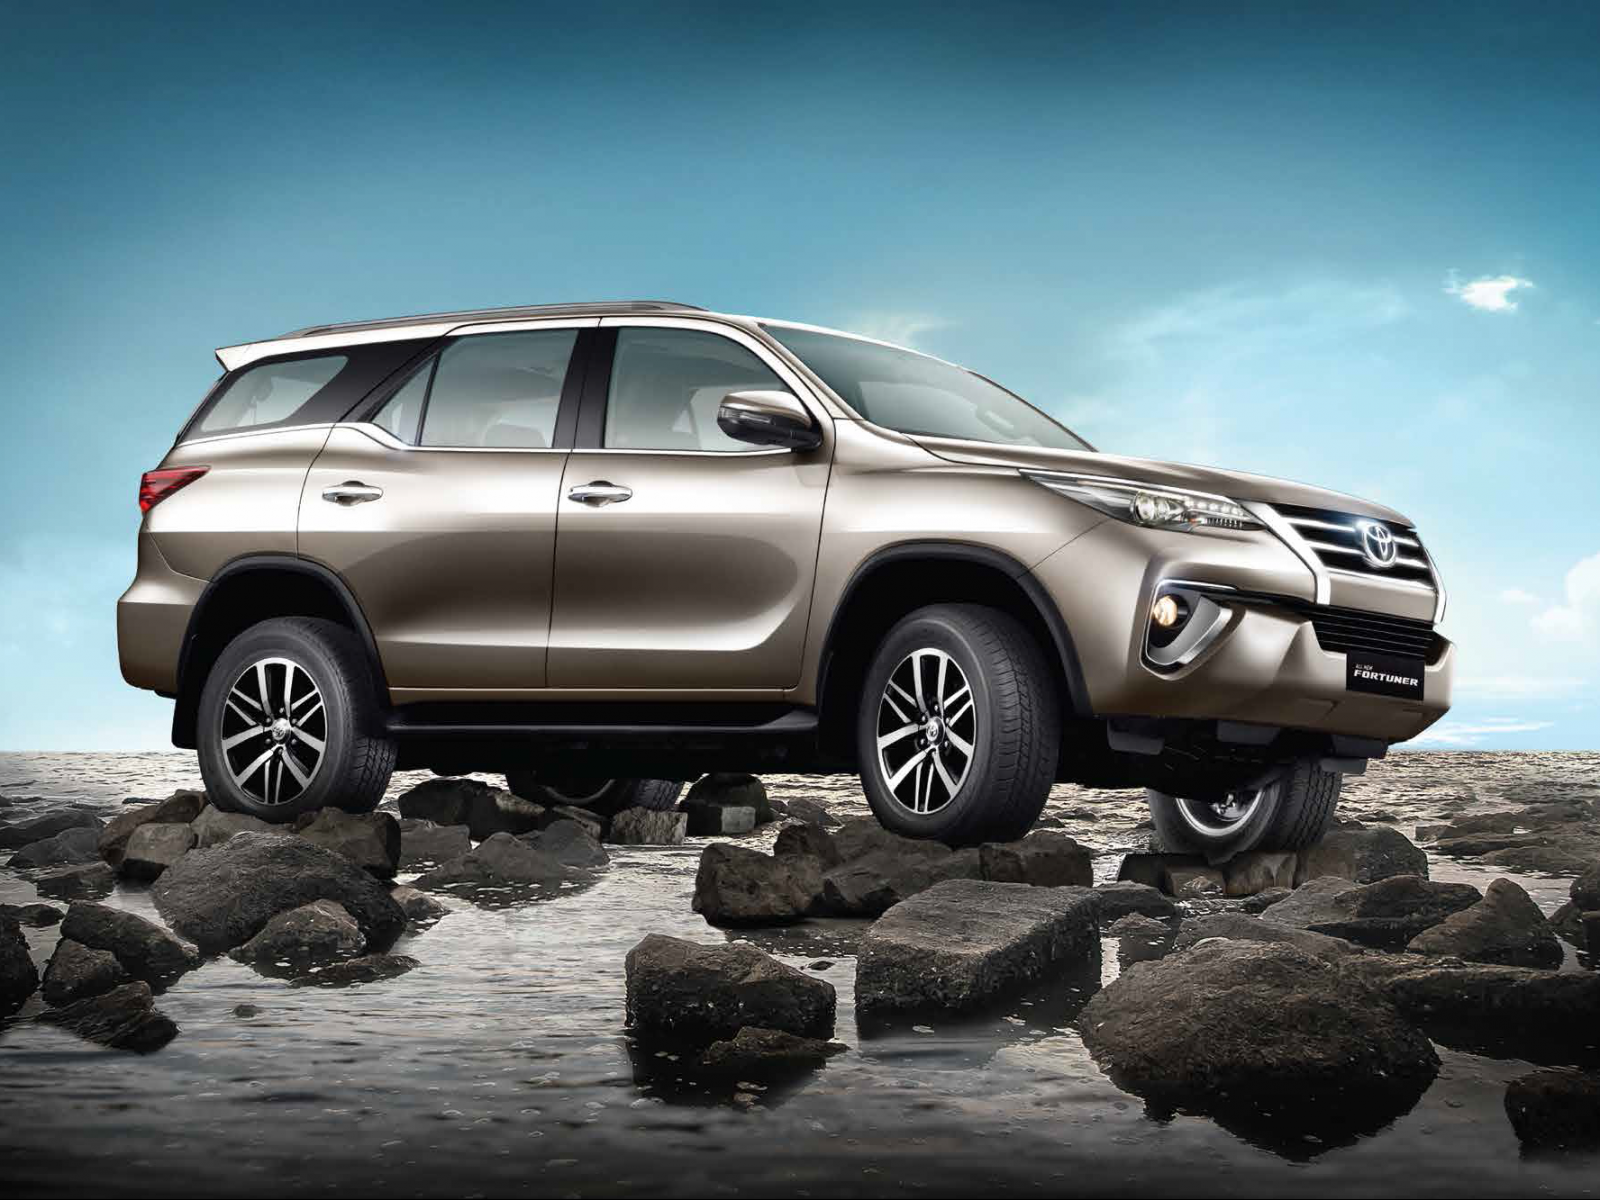 Toyota Fortuner wallpapers download 1600x1200